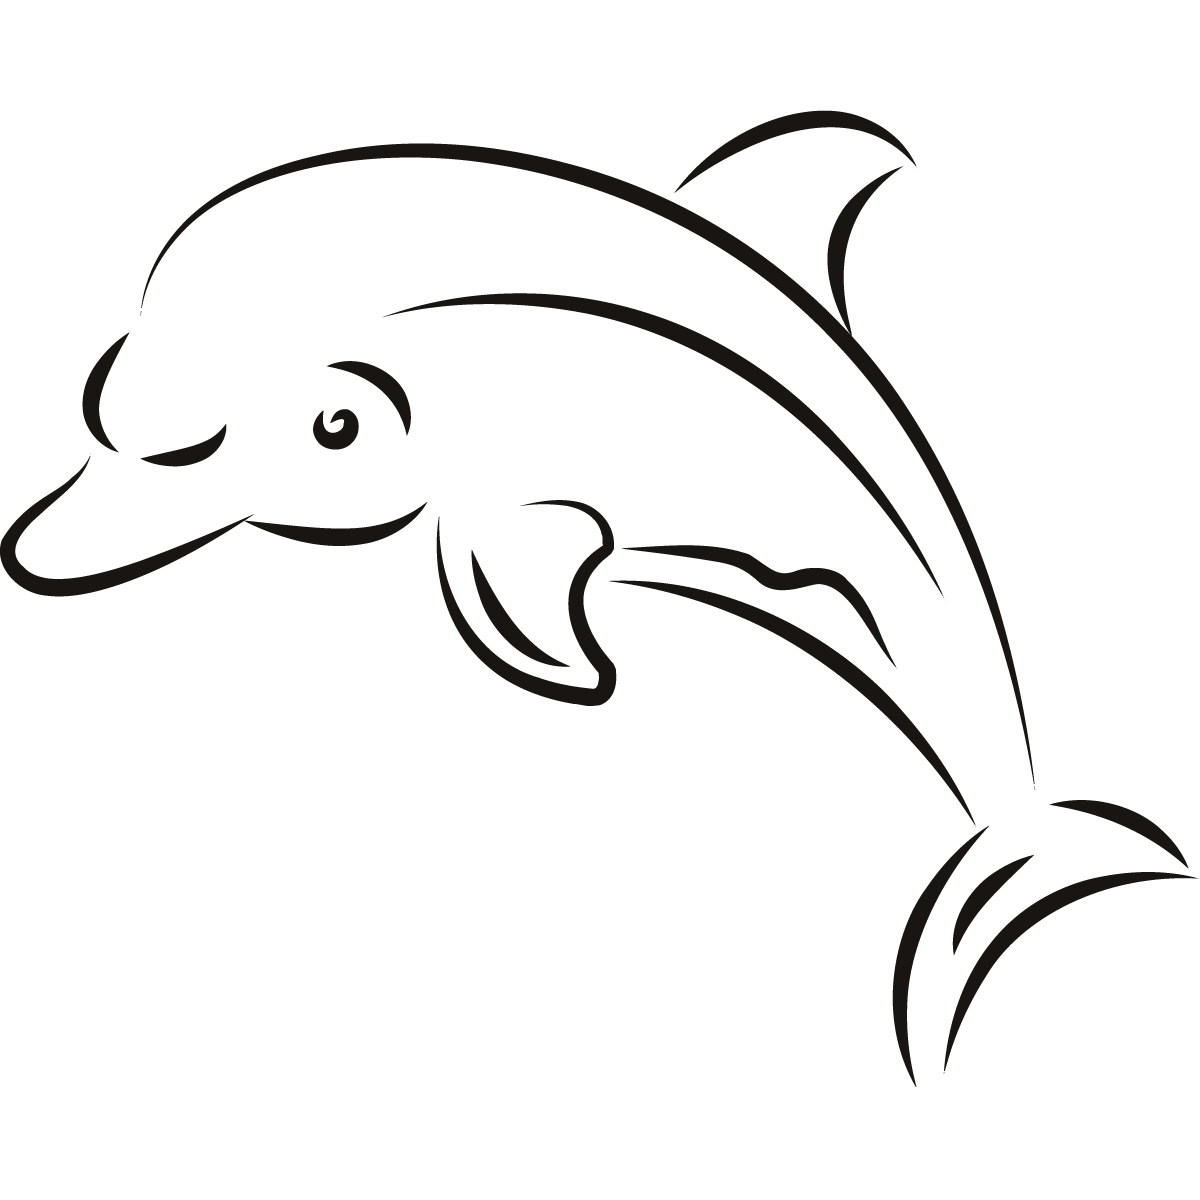 Dolphin outline wall art sticker wall decal clipart best for Decor outline